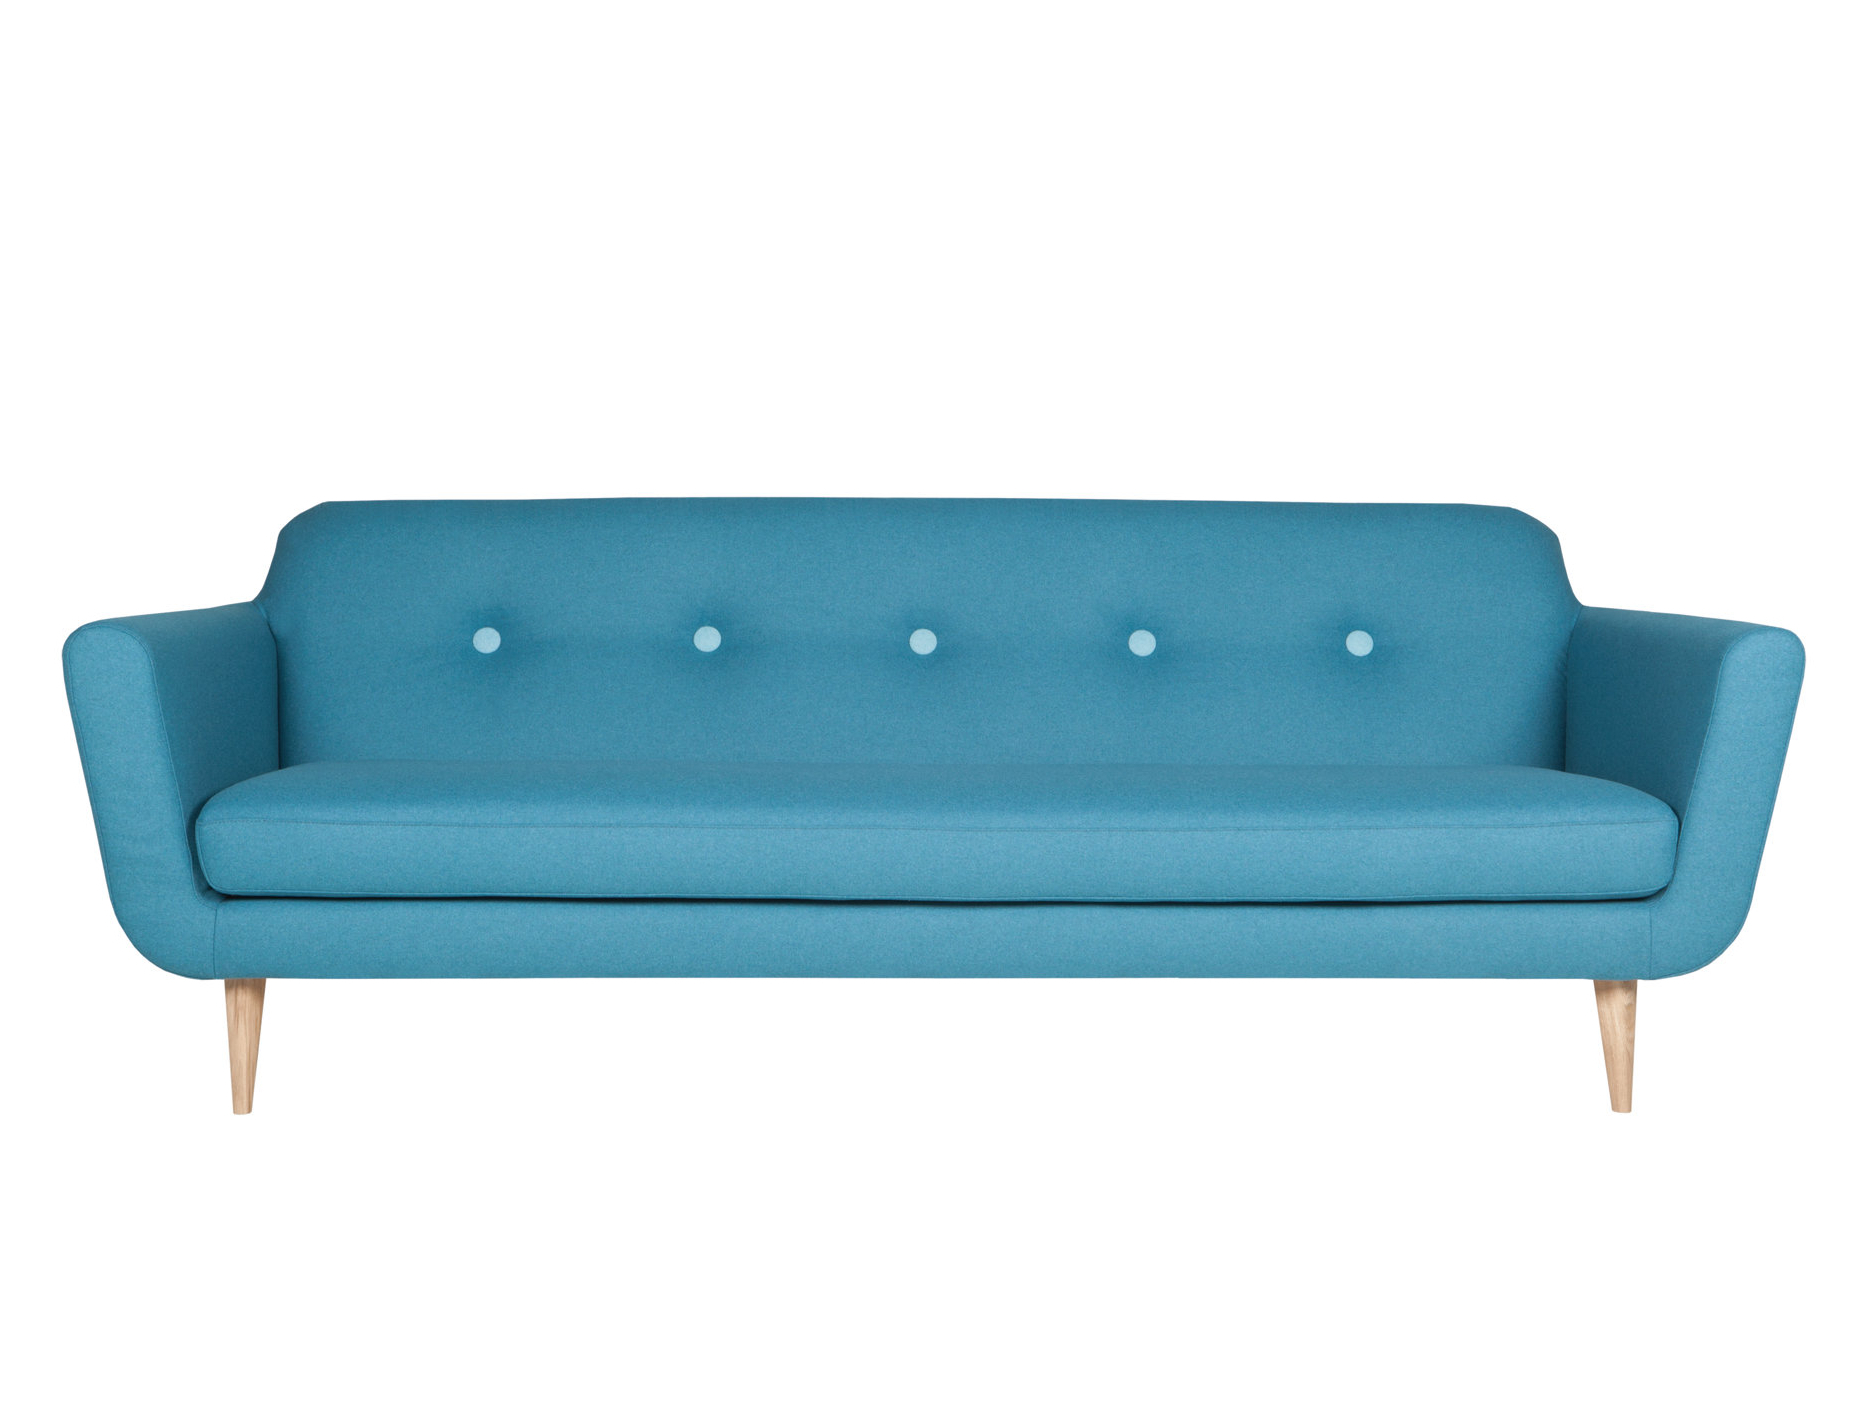 Otto 3 er sofa kollektion otto by sits